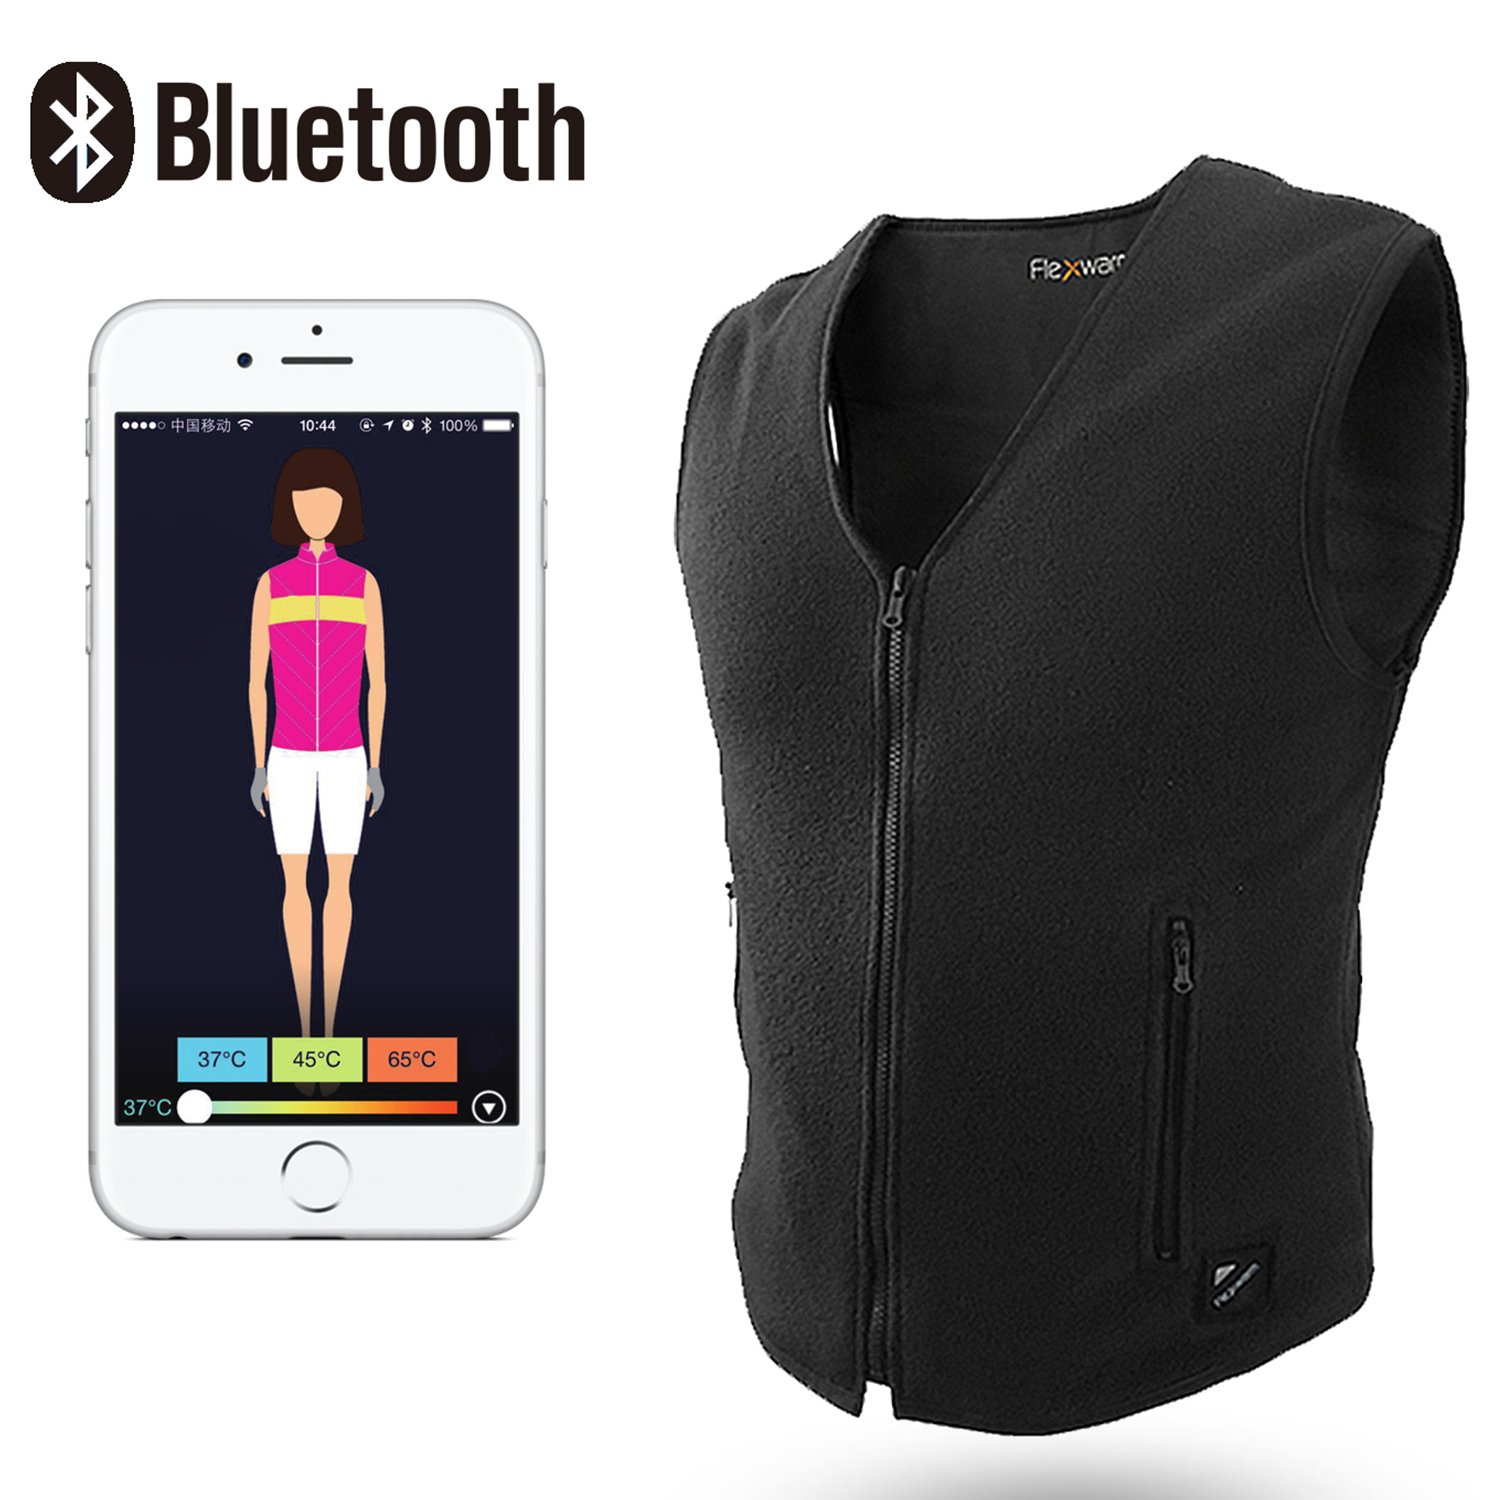 Beautprincess Women's Therapy Insulated Heated Down Vest Electric Heating Clothes Far Infrared with Smartphone Bluetooth App Control Large